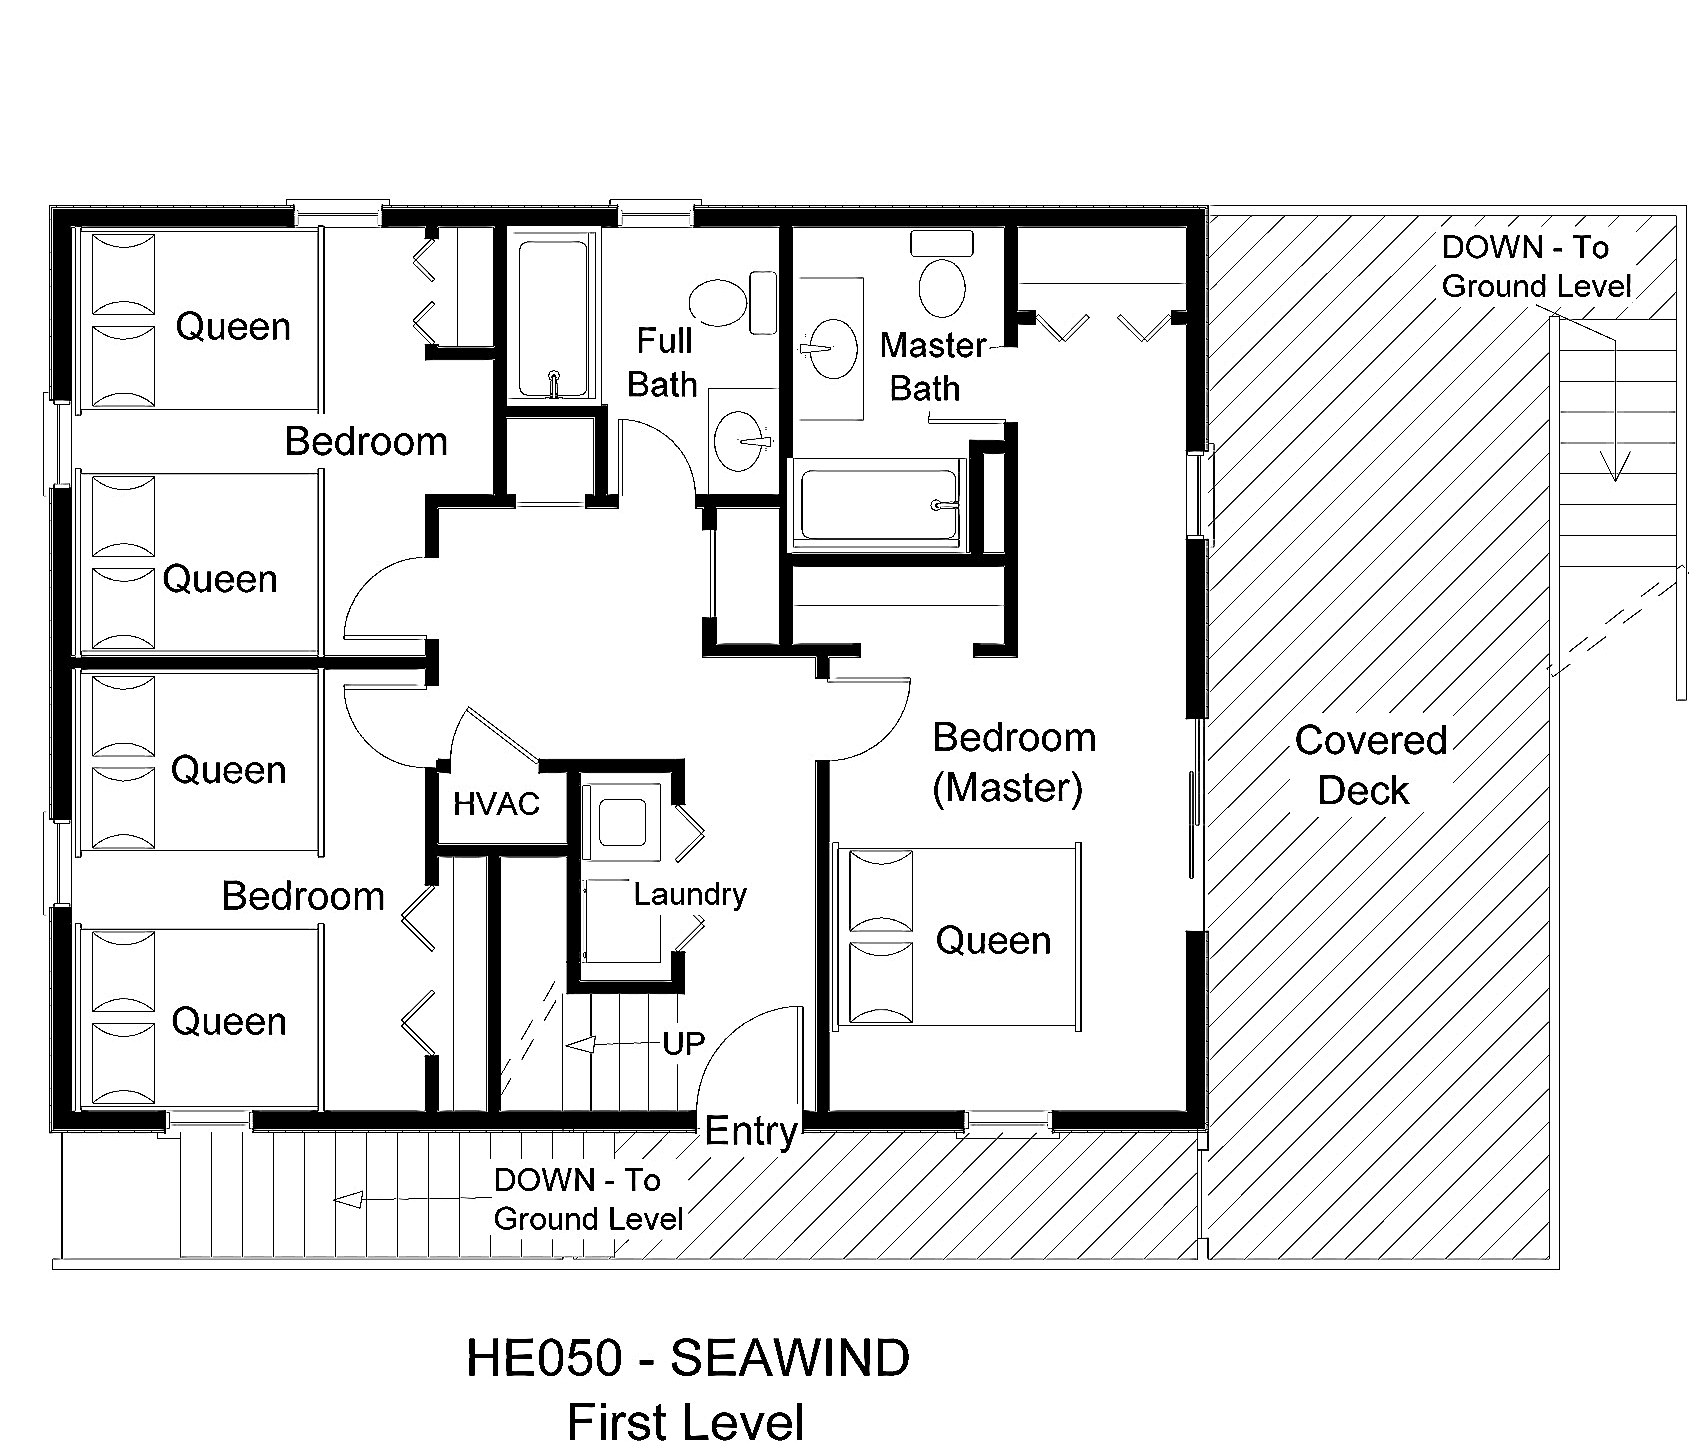 HE050 Seawind - Floorplan Level 1